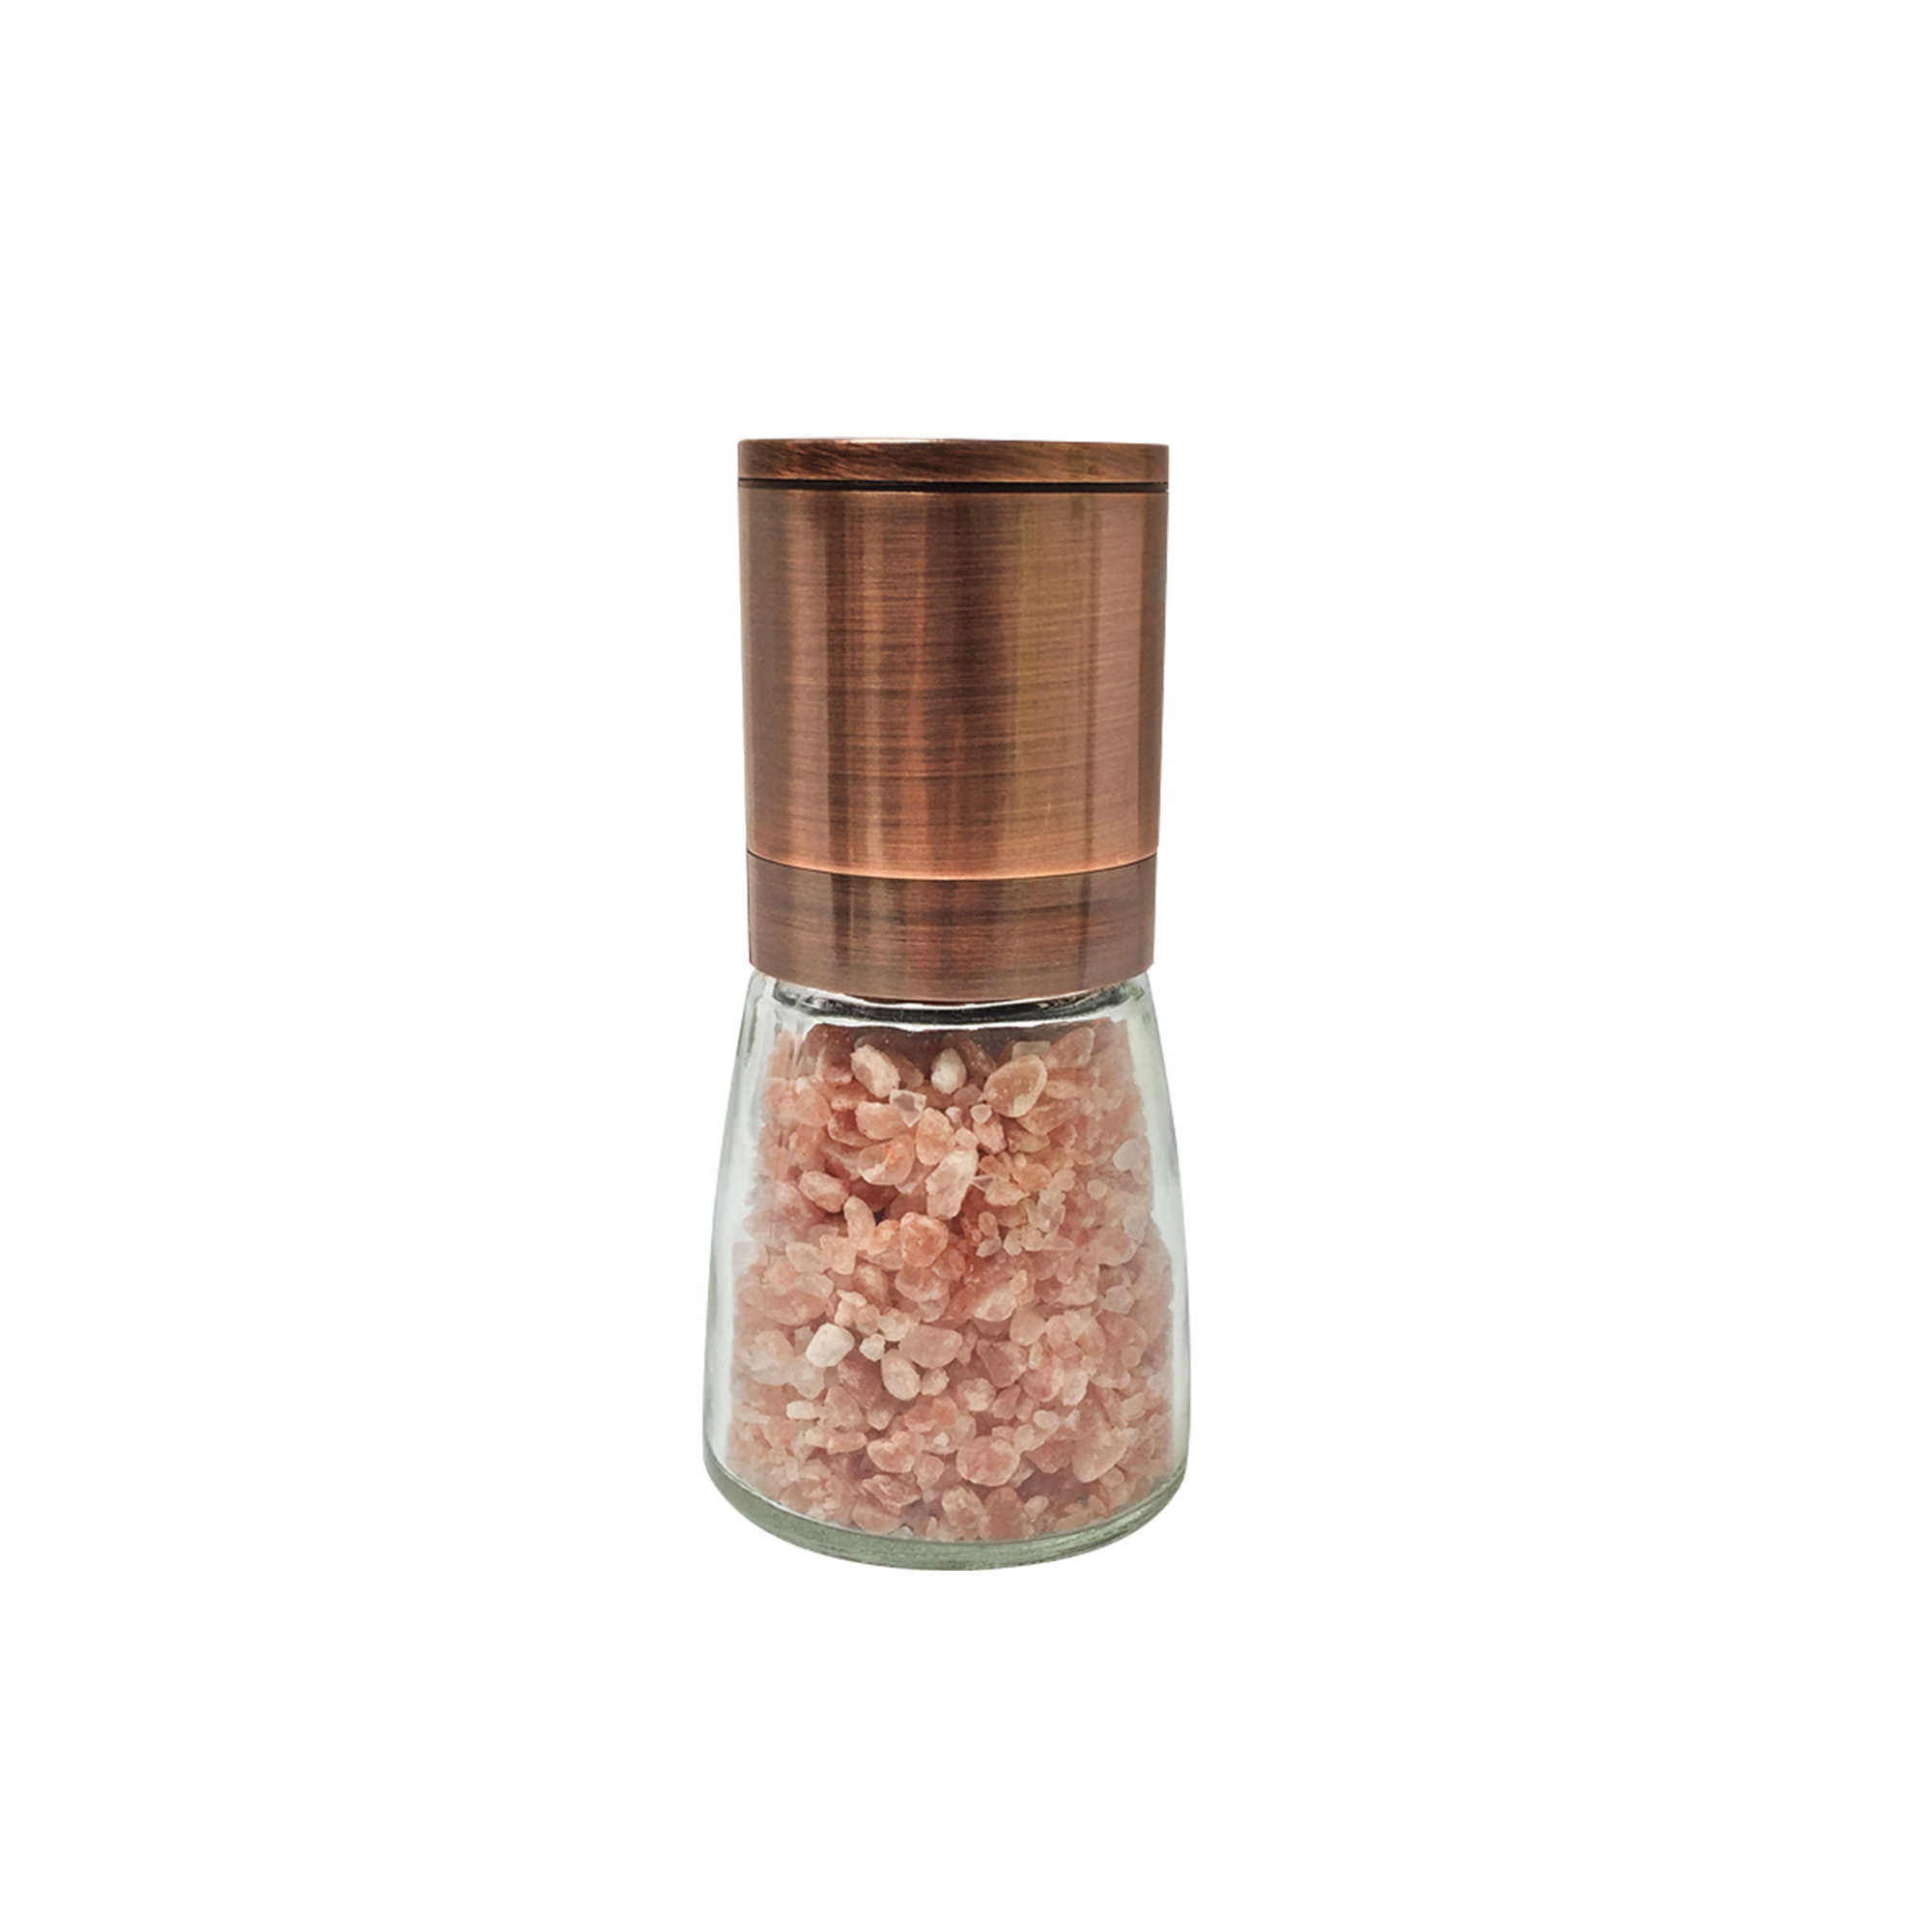 Grind & Shake Copper Upside Down Mill w/ Himalayan Mineral Salt 160g